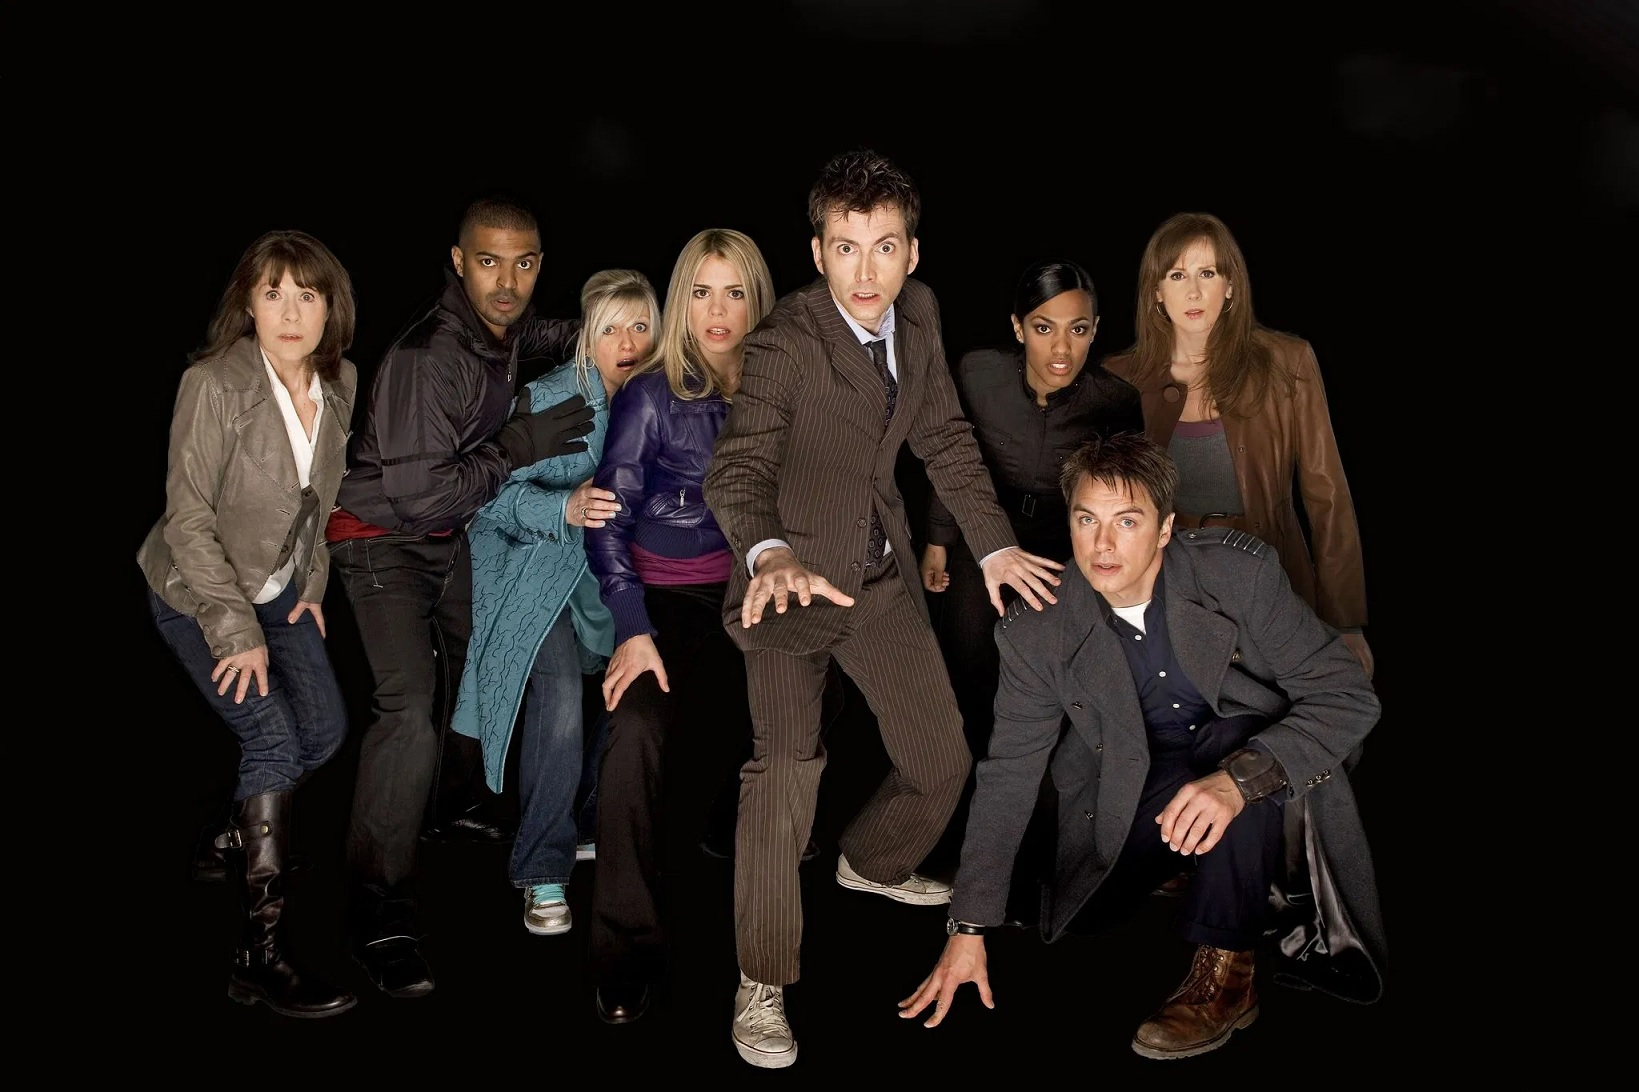 David Tennant and Catherine Tate to Join in The Stolen Earth/ Journey's End Tweet-Along Rewatch